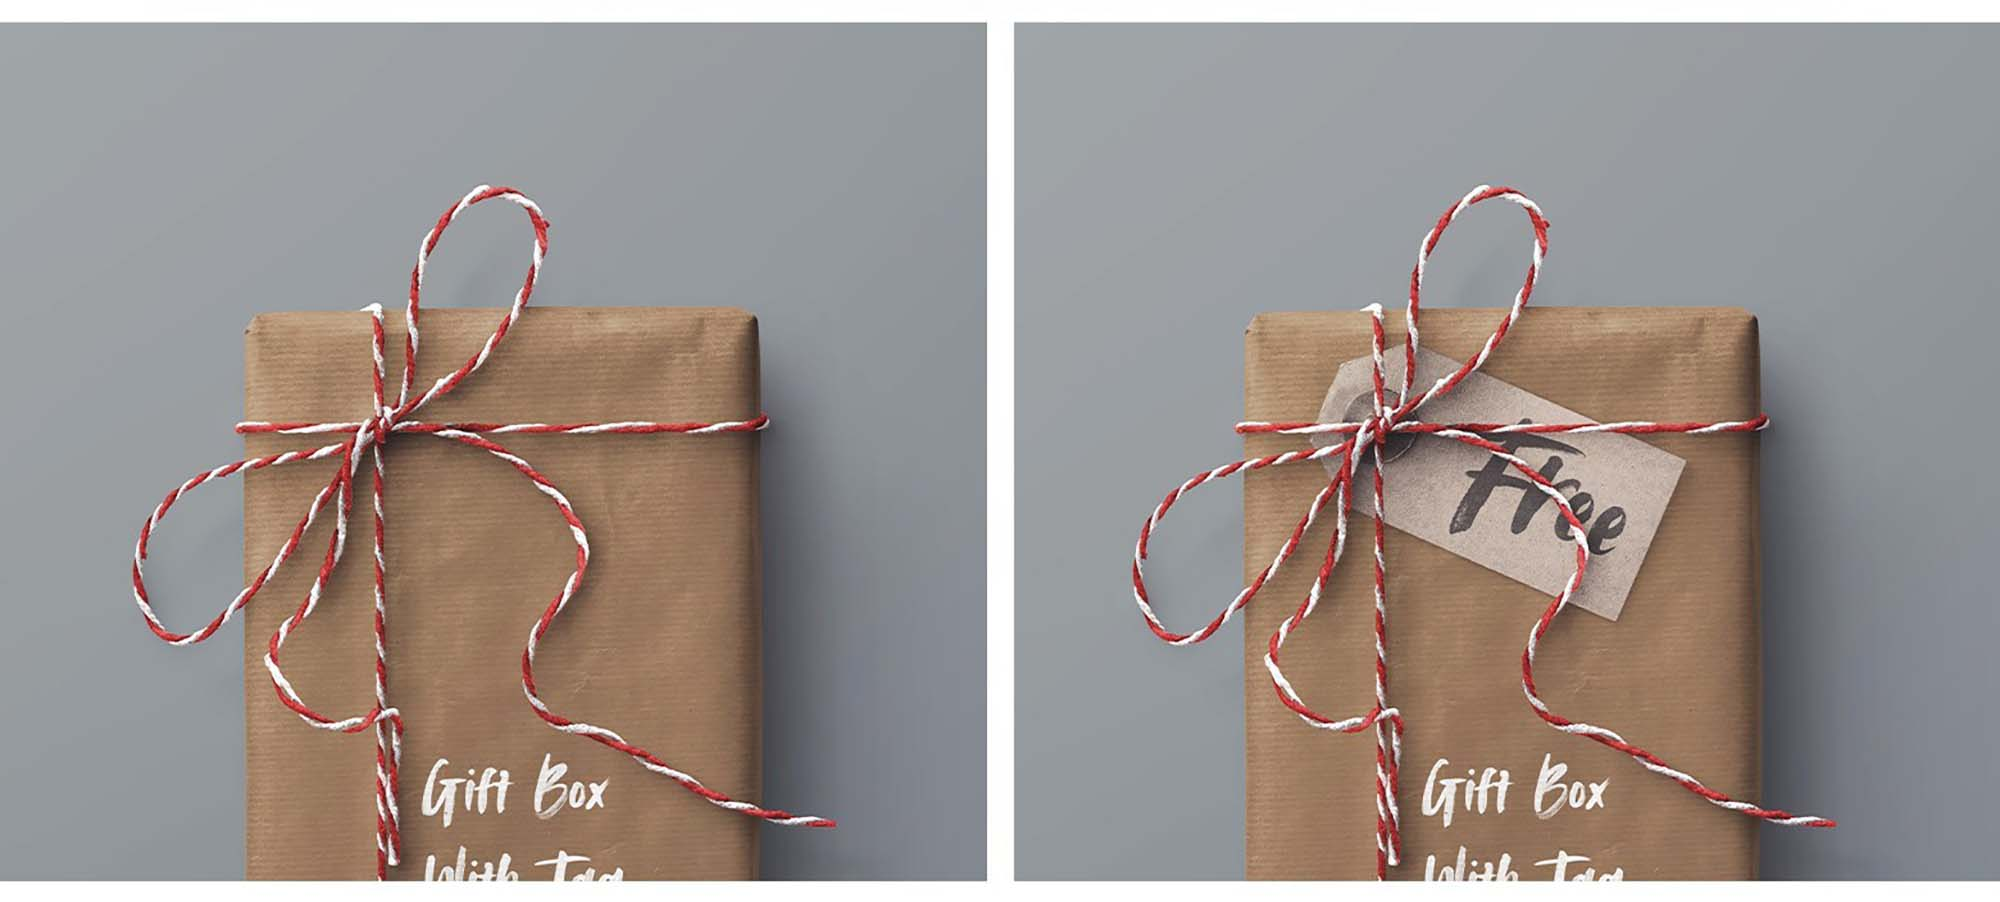 Gift Box and Tag Mockup 4